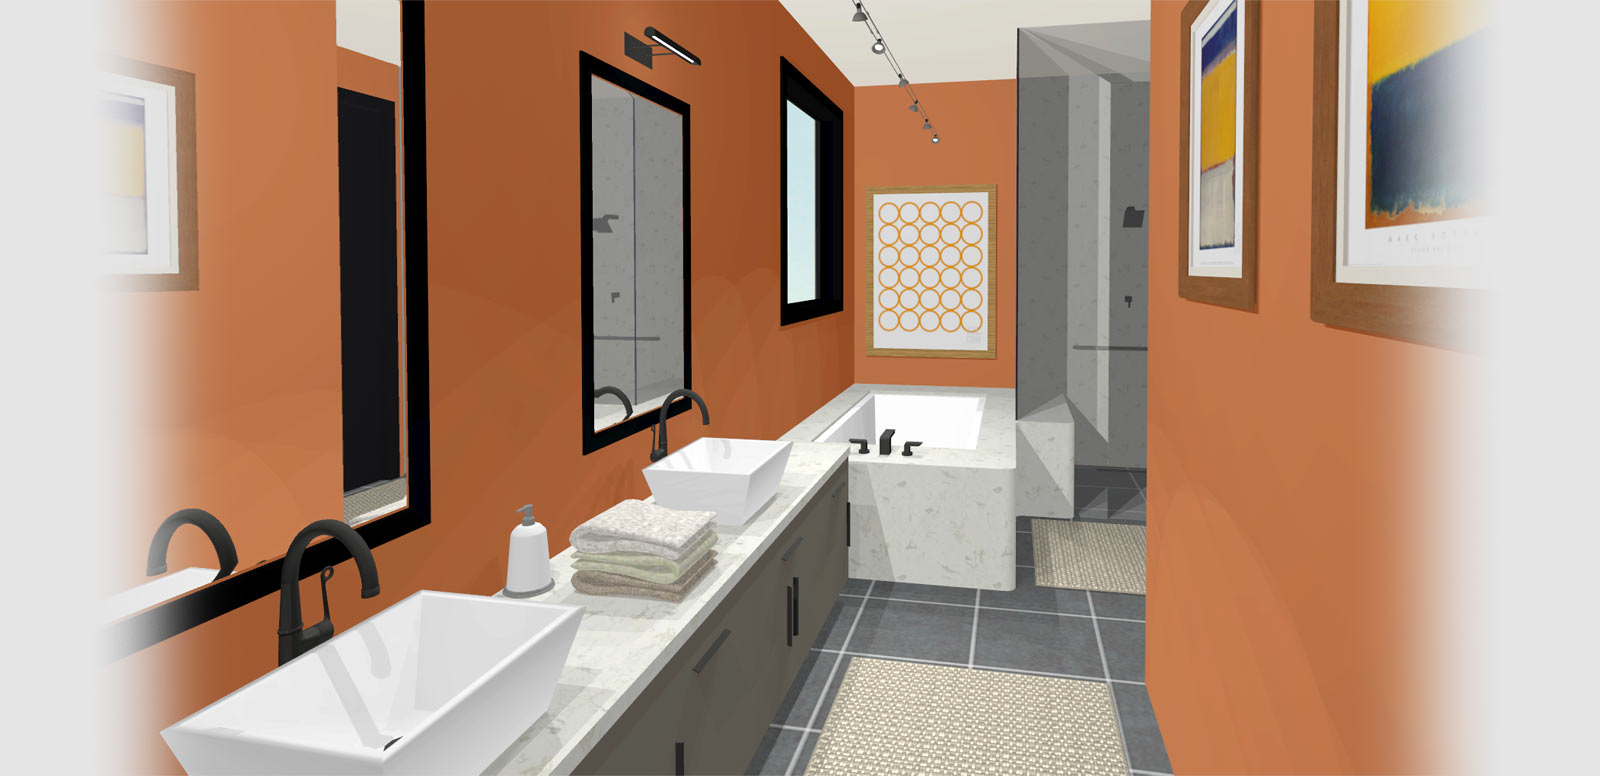 kitchen bath kitchen and bath design Master bath with multiple sinks and a marble bath